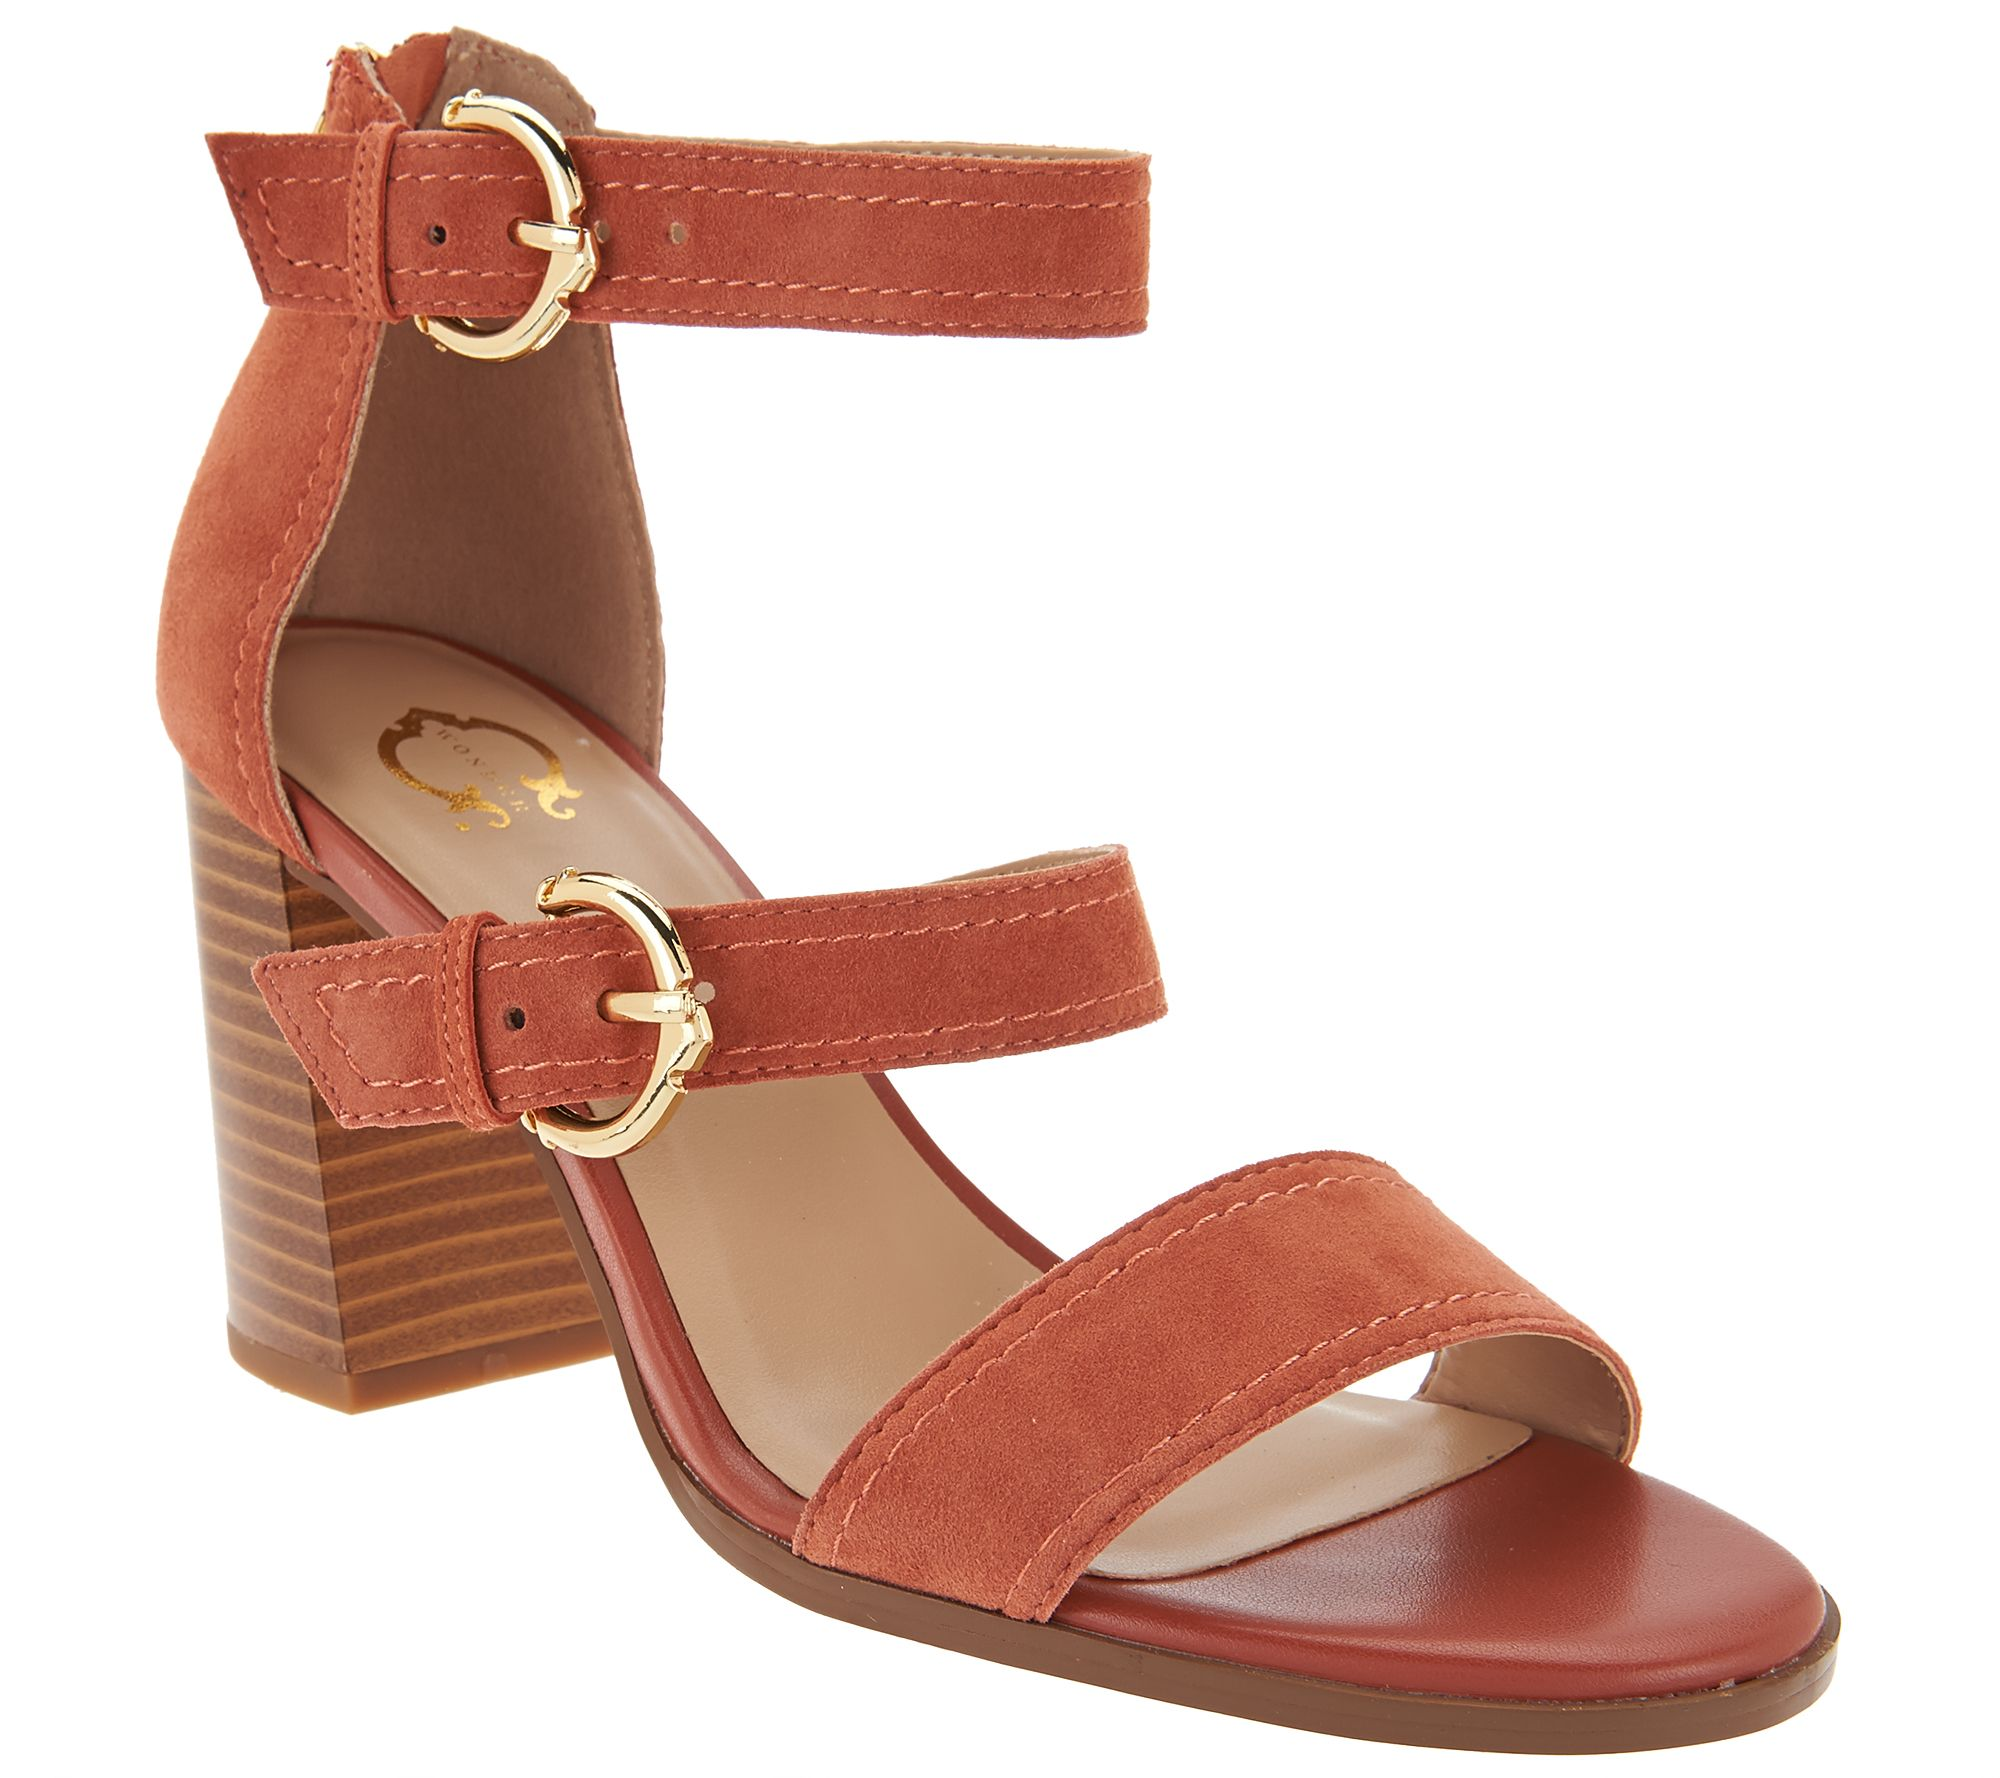 best cheap online discount tumblr C. Wonder Block Heel Suede Sandals with Buckles - Maya PTfSUy